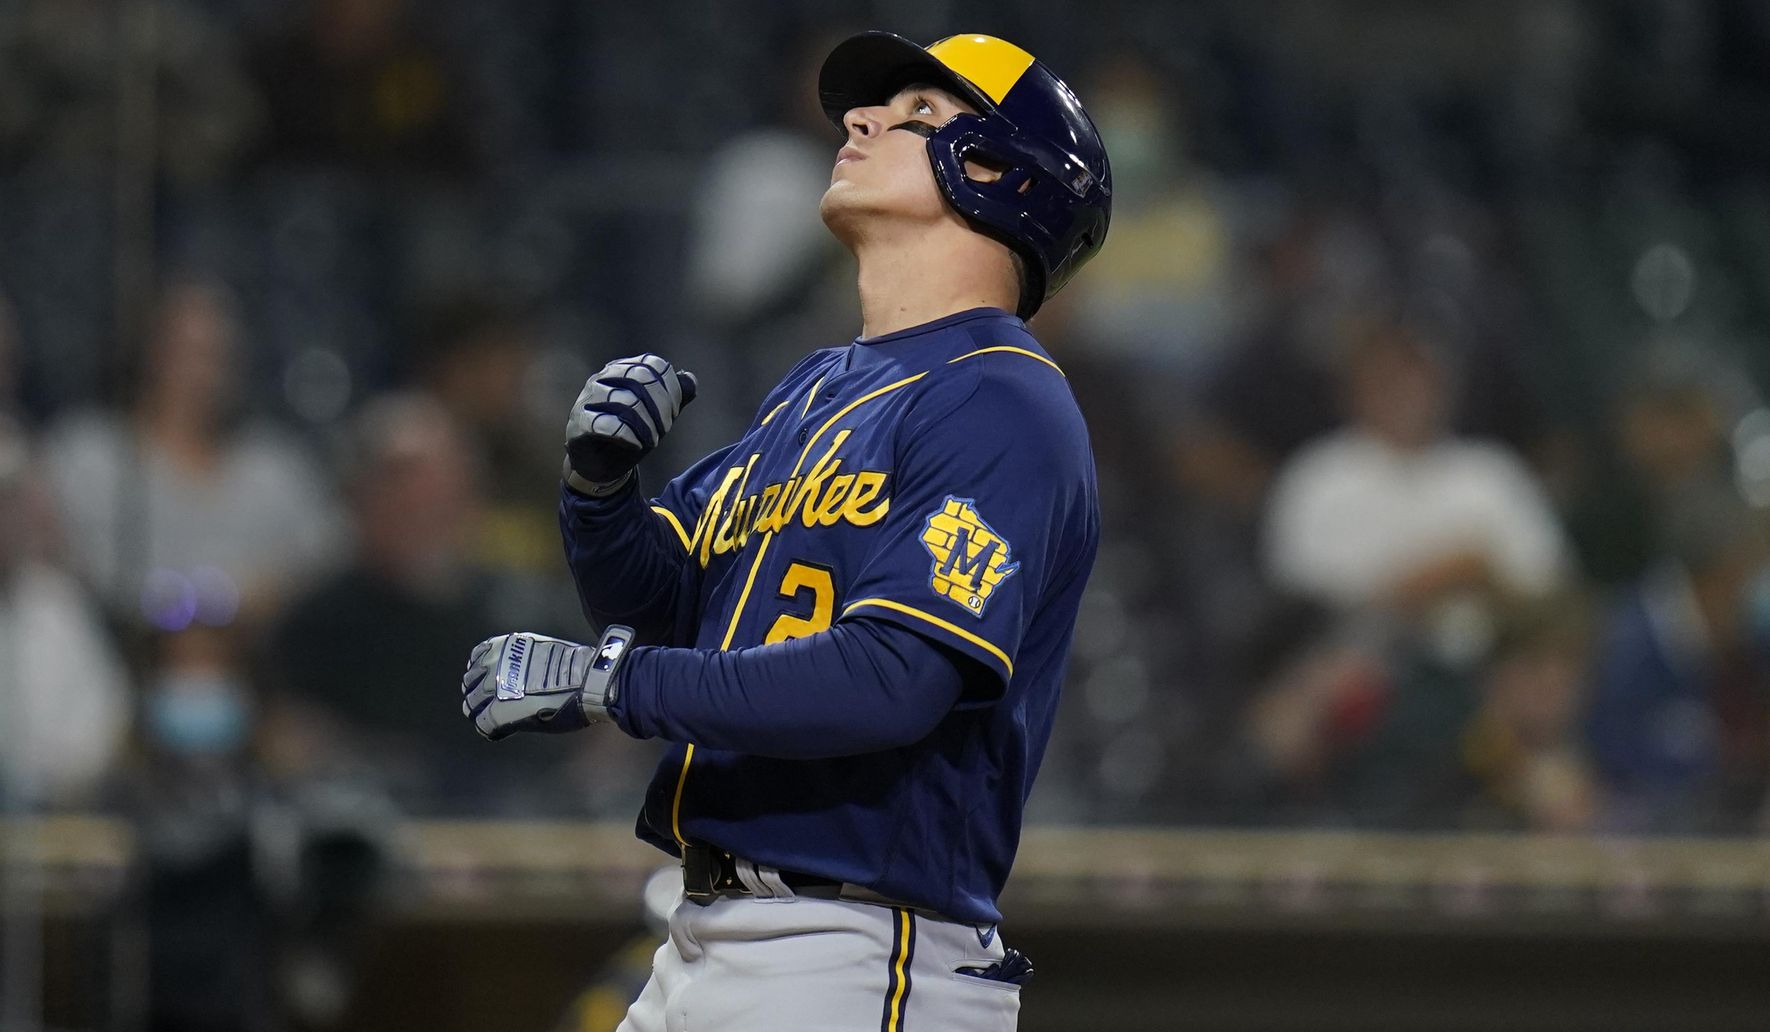 Brewers_padres_baseball_21463_c0-143-3420-2137_s1770x1032